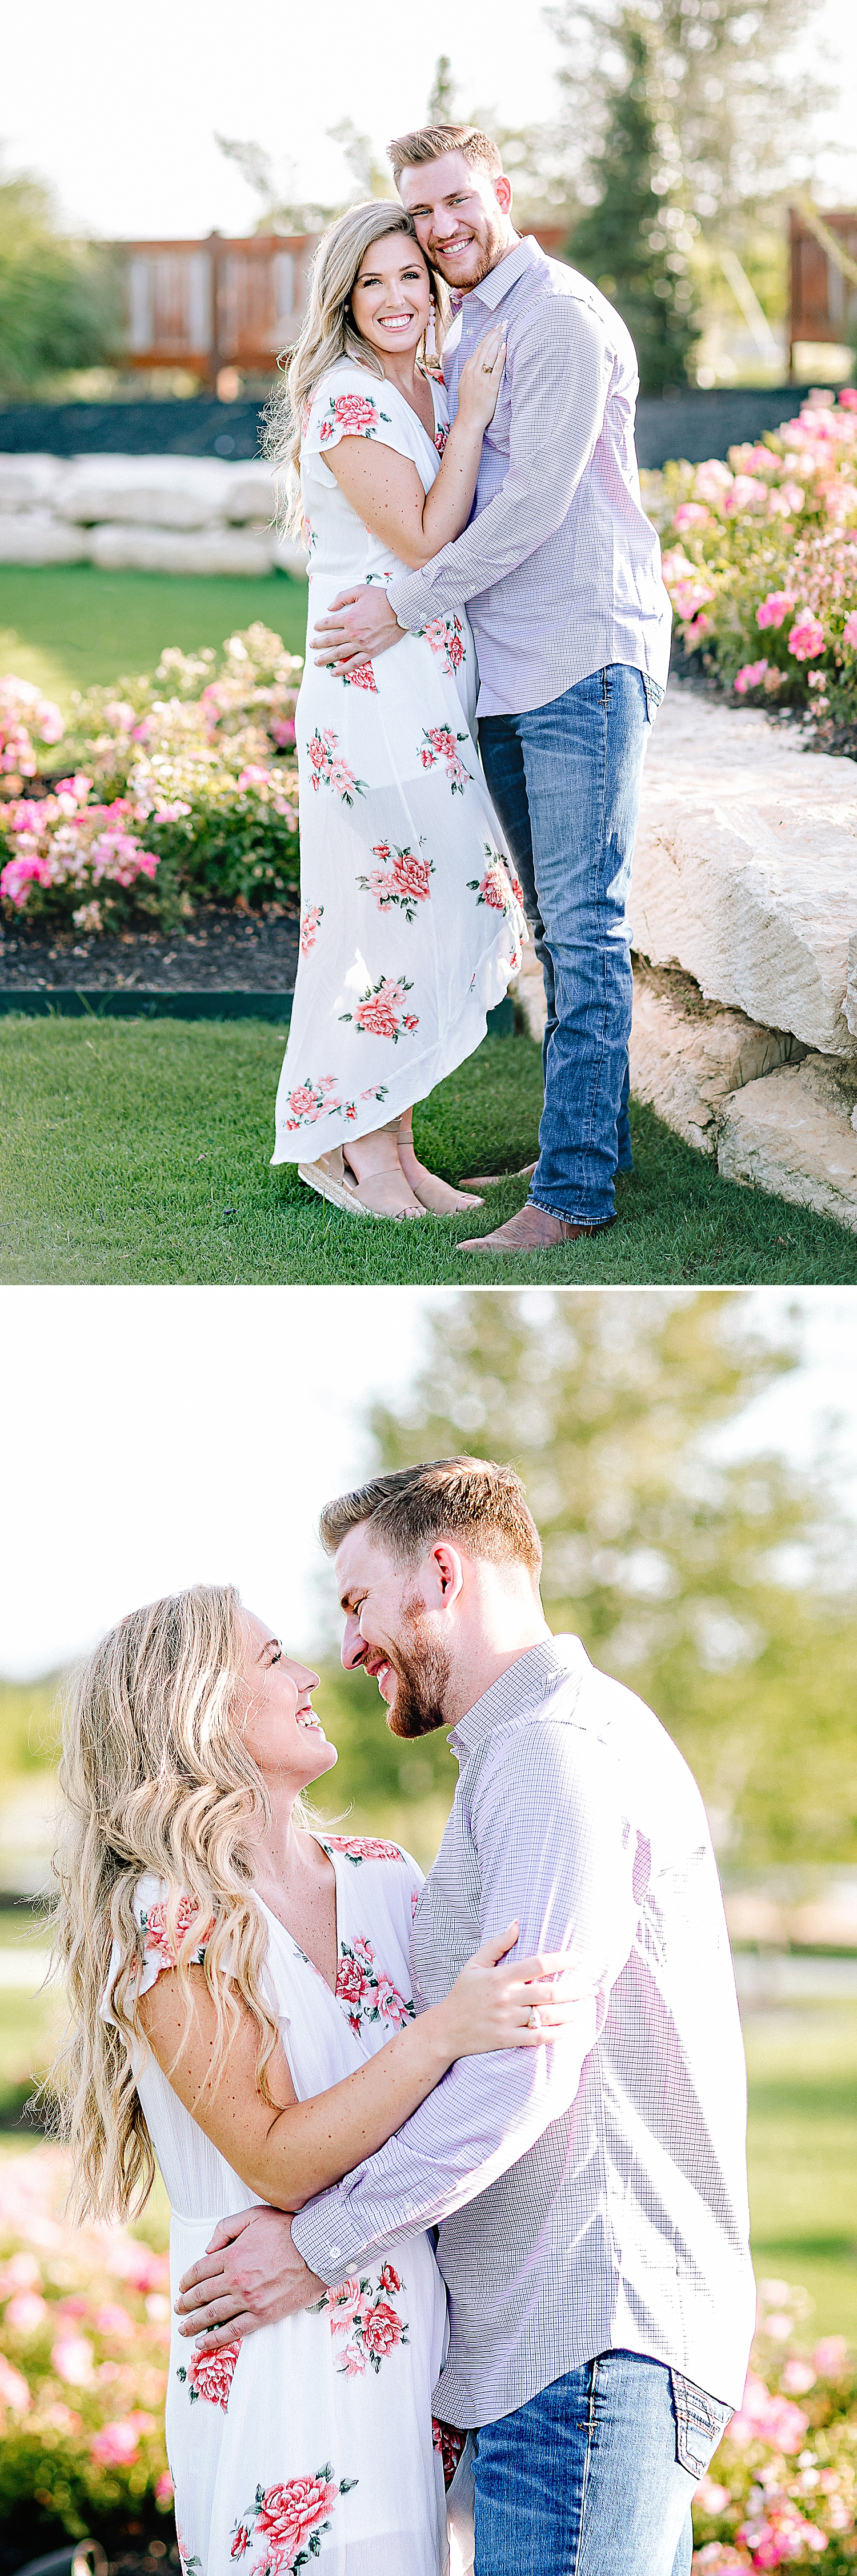 Carly-Barton-Photography-Engagement-Photos-College-Station-Texas-The-Weinberg-at-Wixon-Valley_0032.jpg